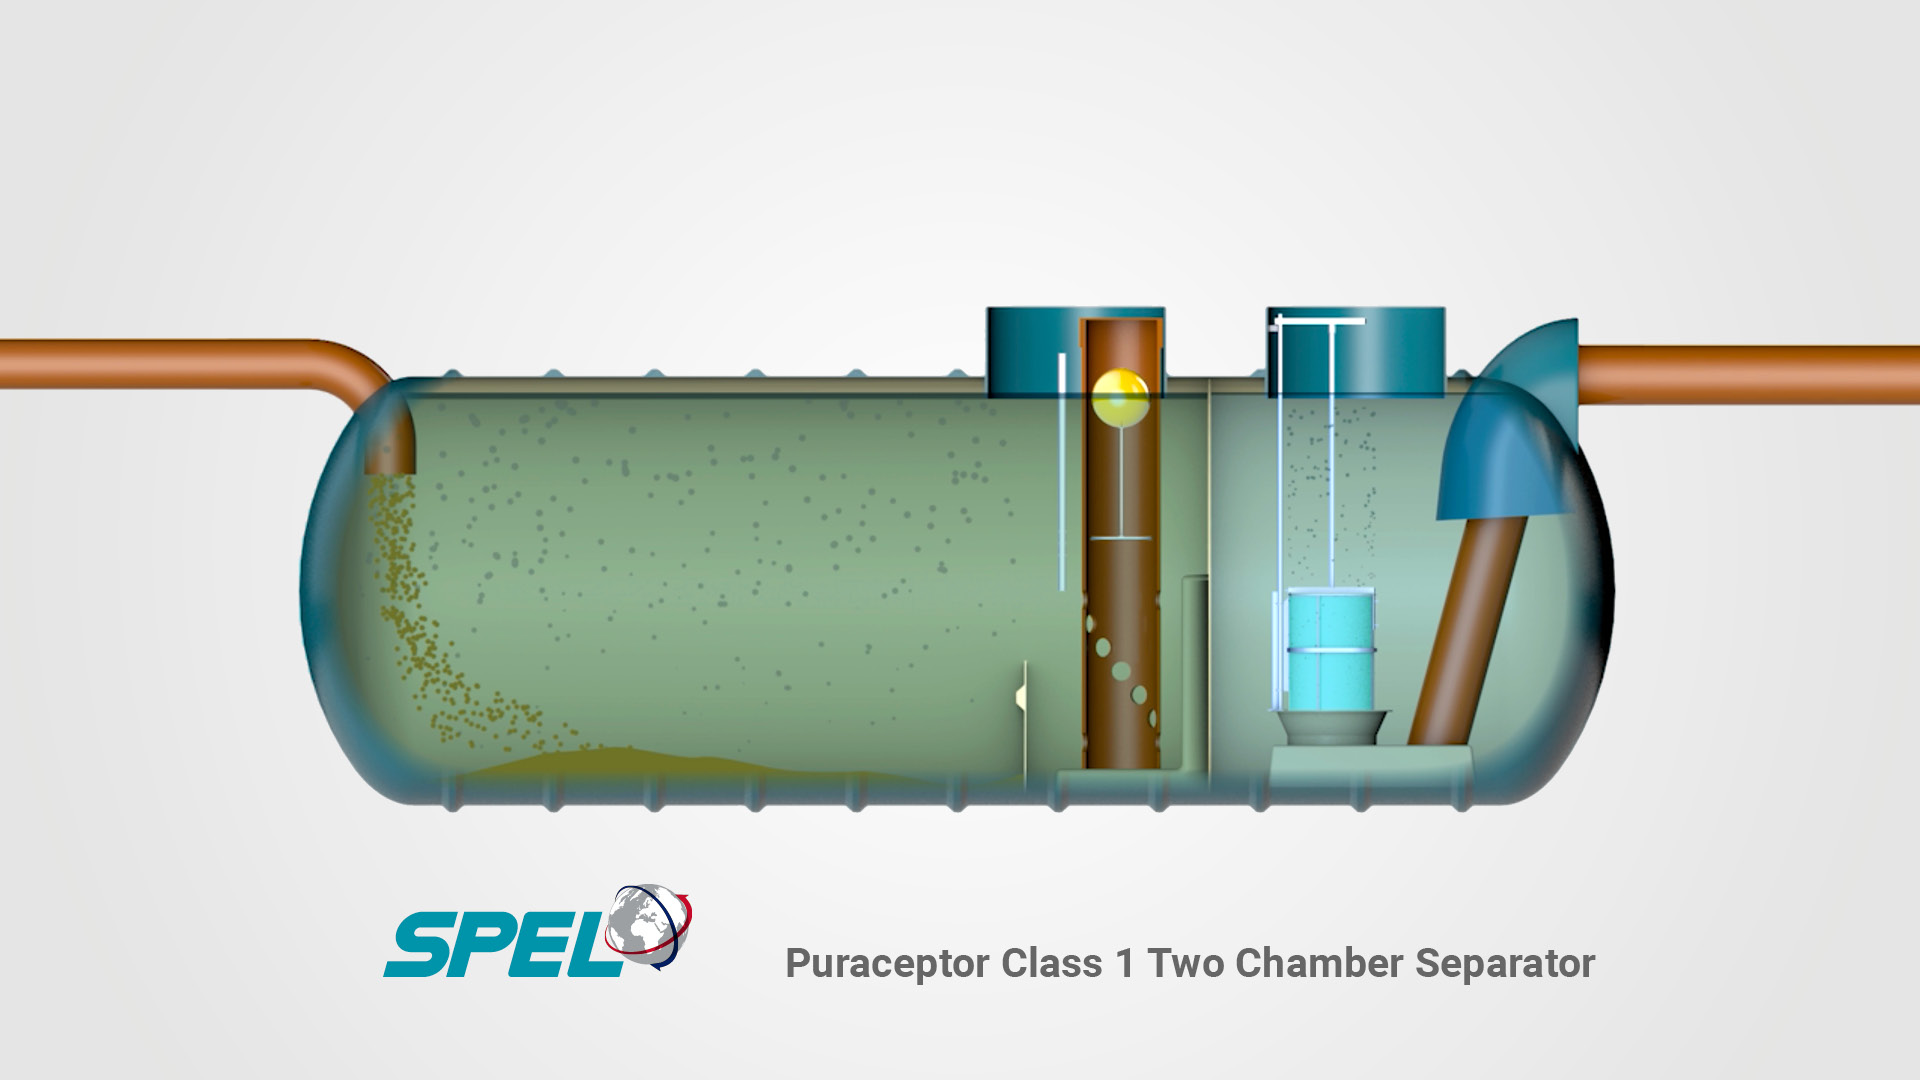 Watch An Overview Video Of The Spel Puraceptor Class 1 Two